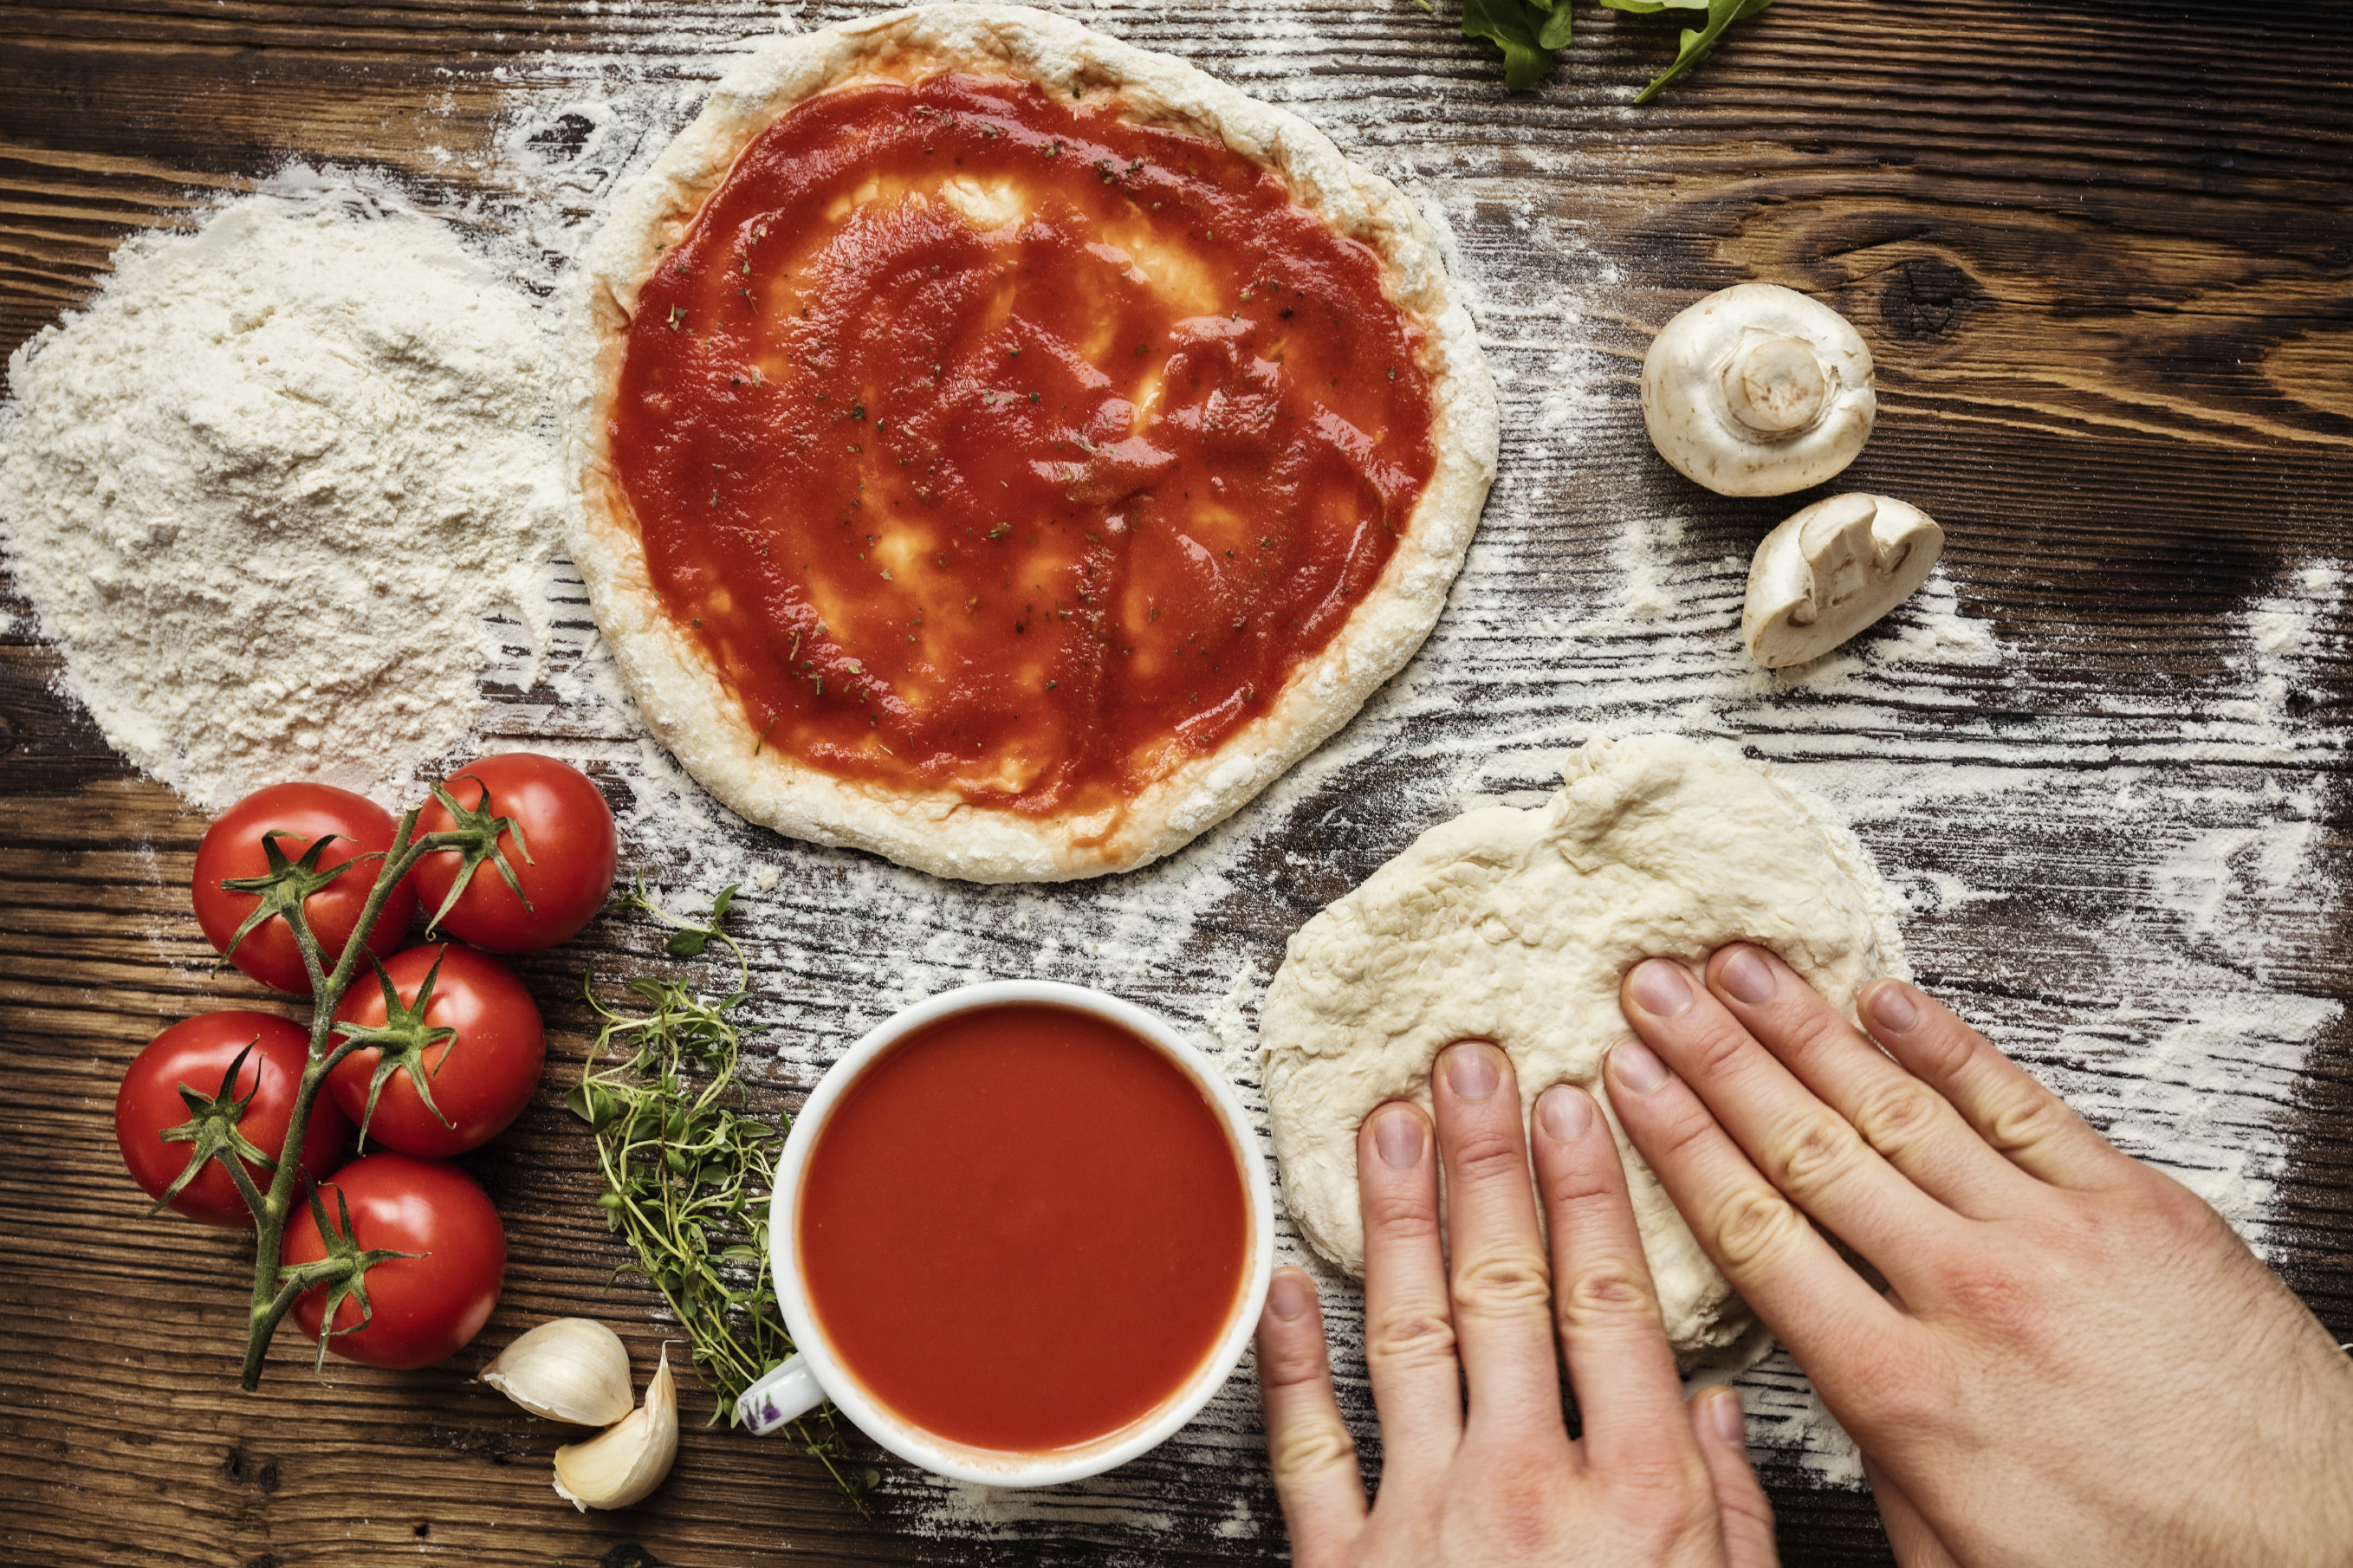 Hand Crafted Stone Oven Baked Pizzas